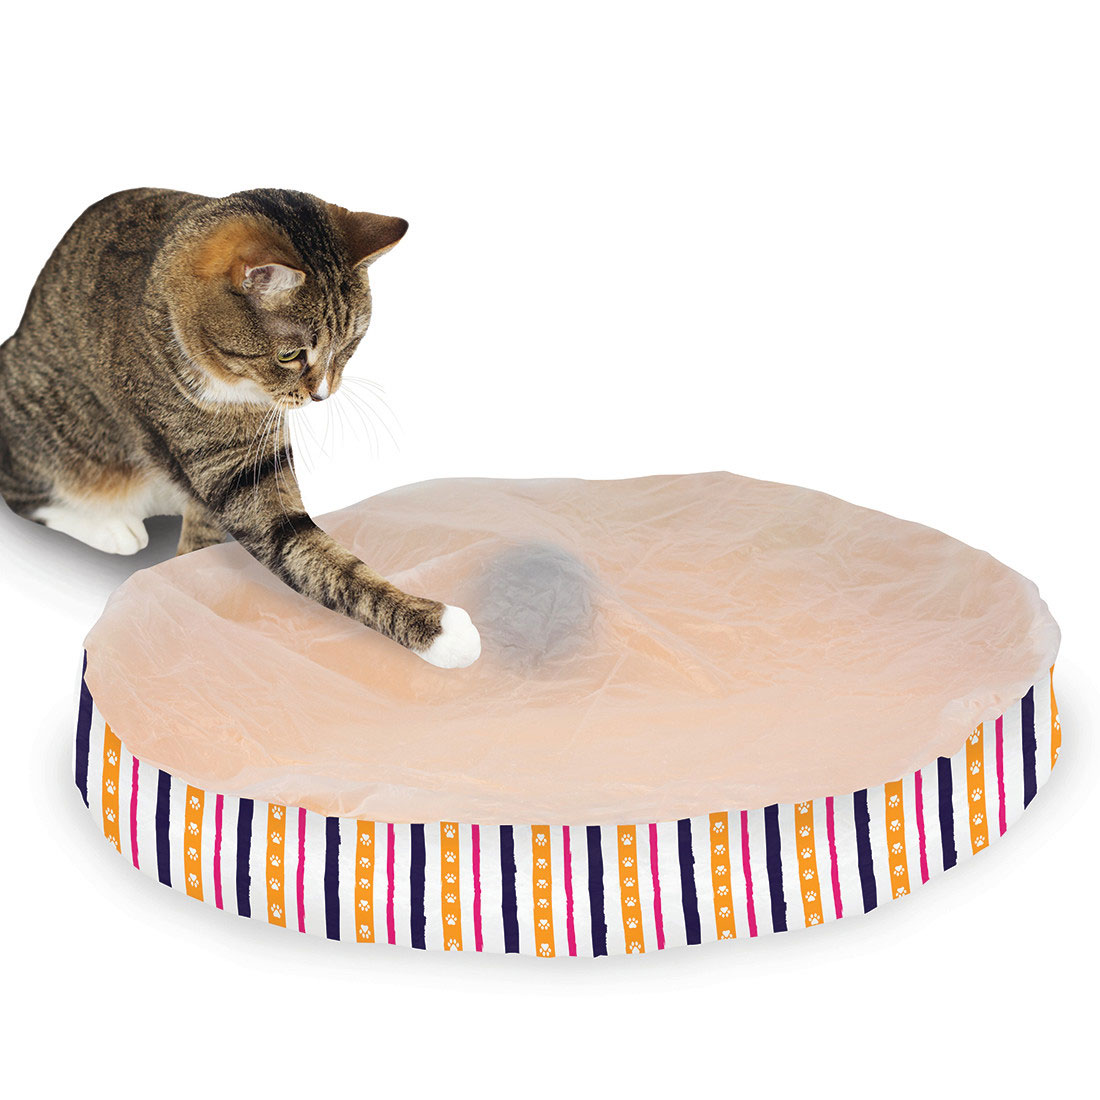 Turbo® Random Roller™ Cat Toy